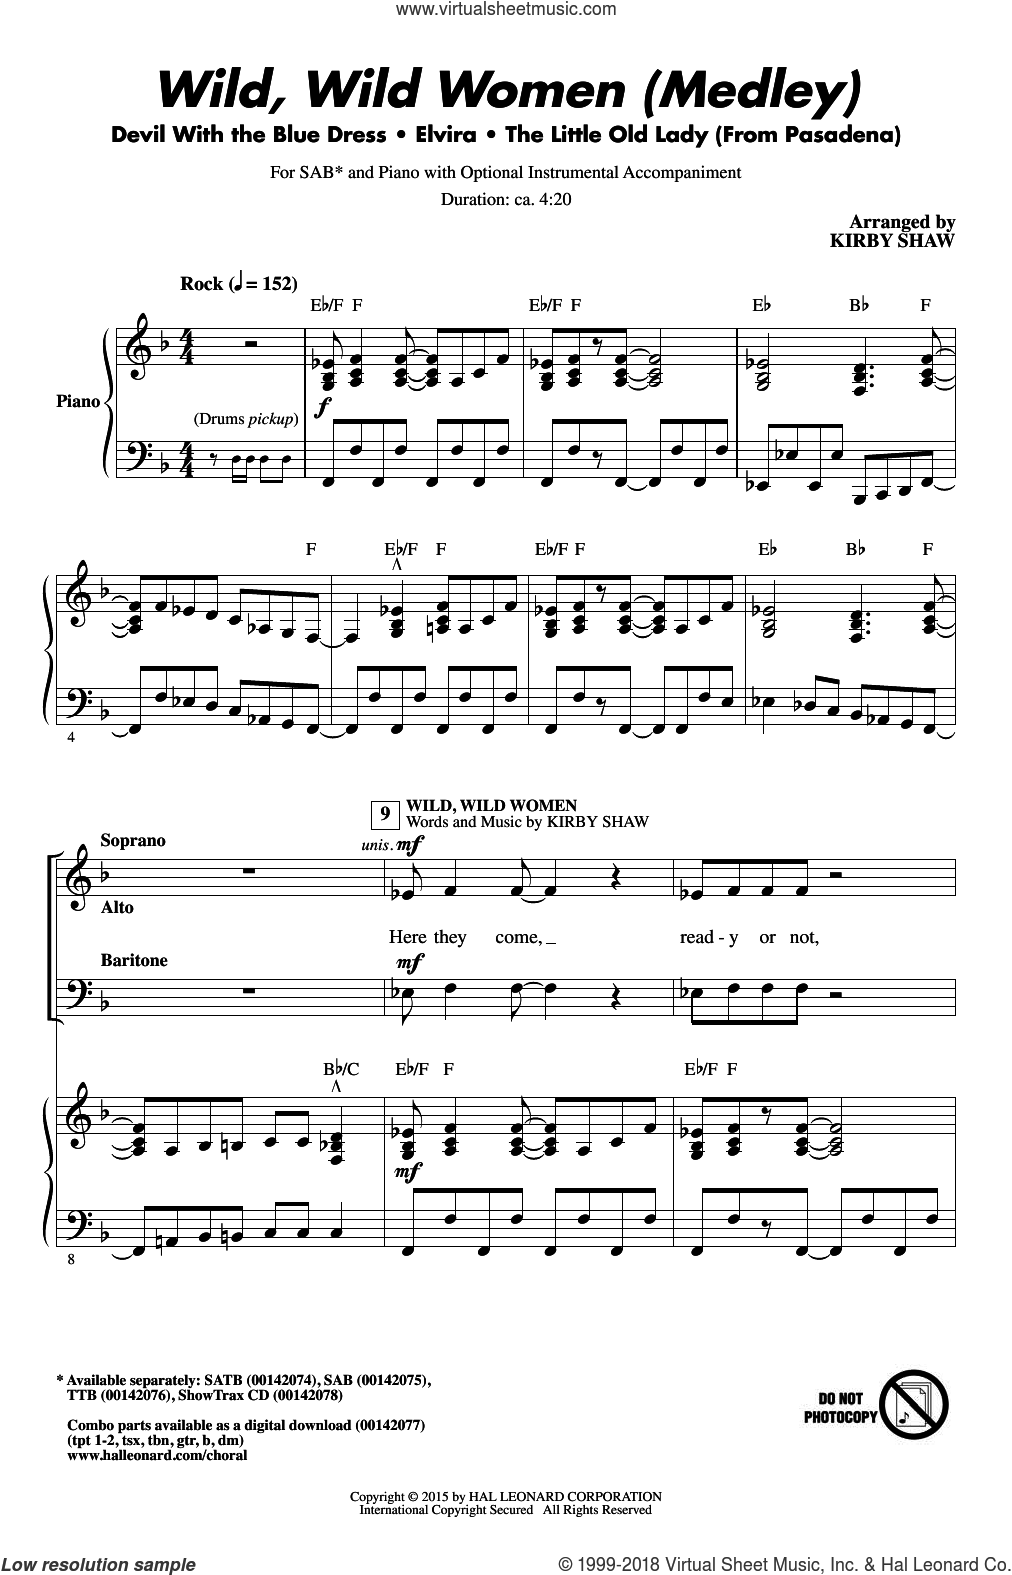 Wild, Wild Women (Medley) sheet music for choir (SAB) by William Stevenson, Kirby Shaw and Mitch Ryder, intermediate choir (SAB). Score Image Preview.